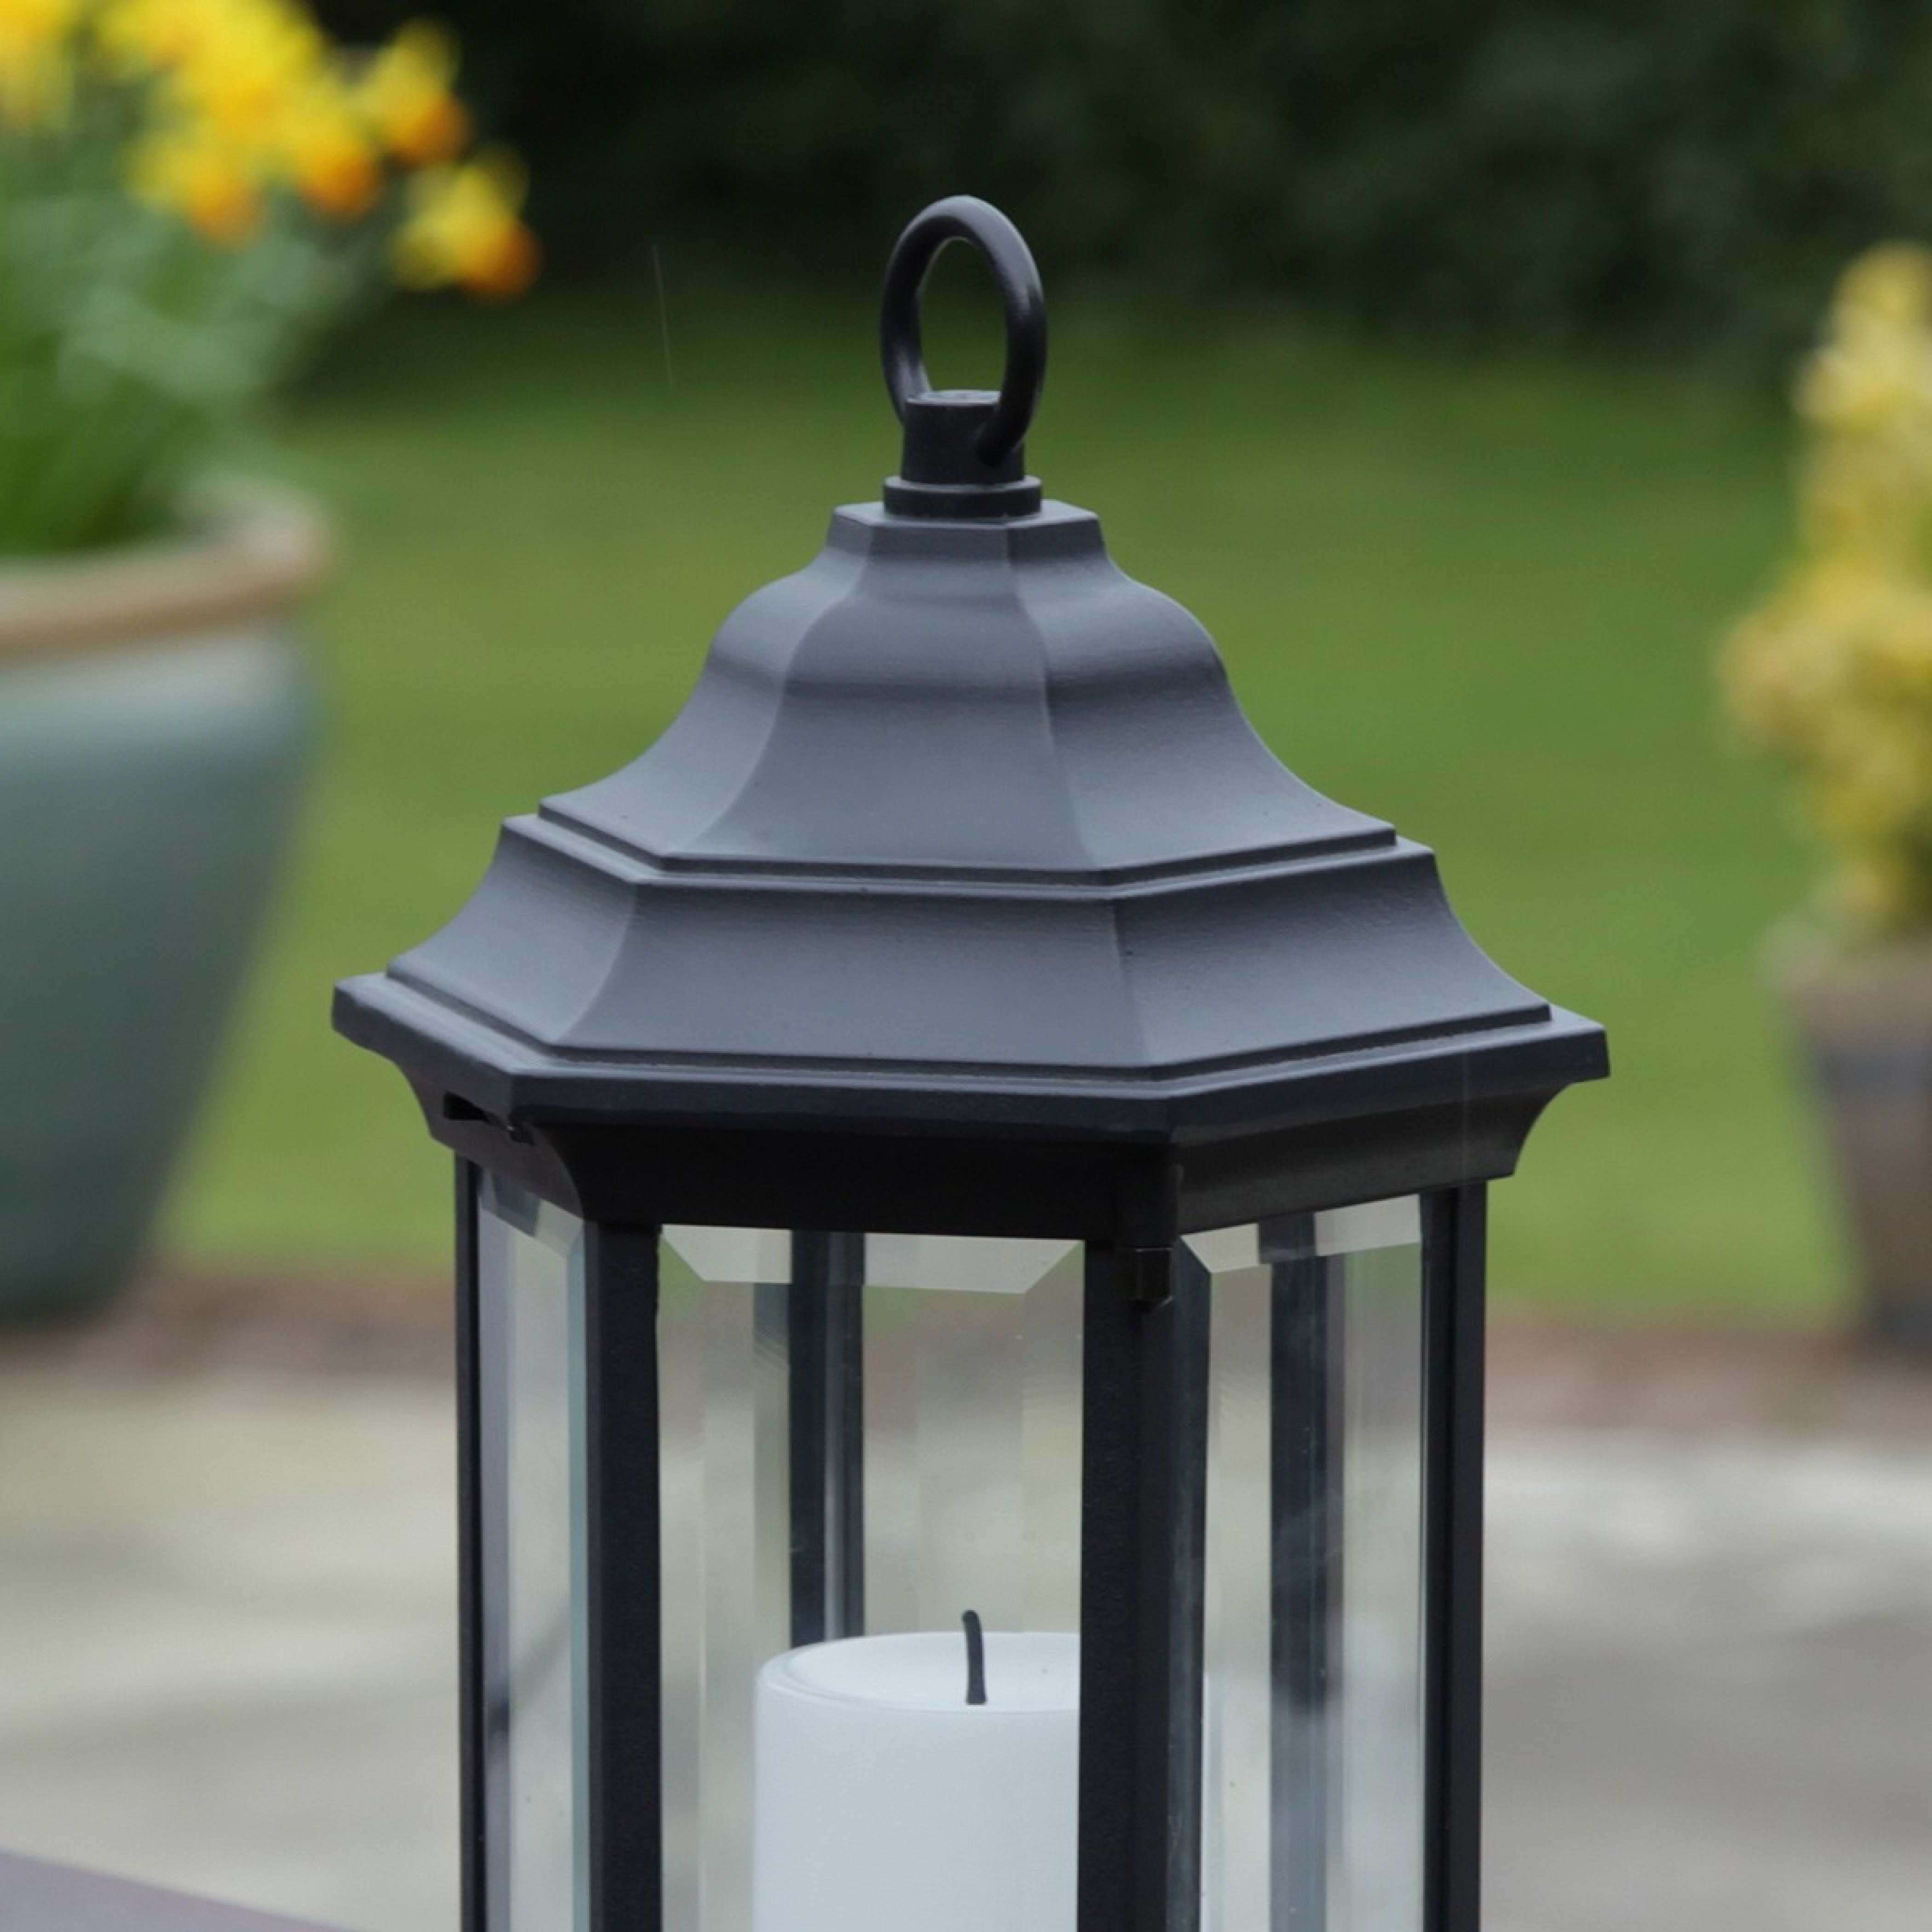 2019 Battery Operated Outdoor Lanterns With Timer – Outdoor Ideas Pertaining To Outdoor Lanterns With Timers (Gallery 13 of 20)